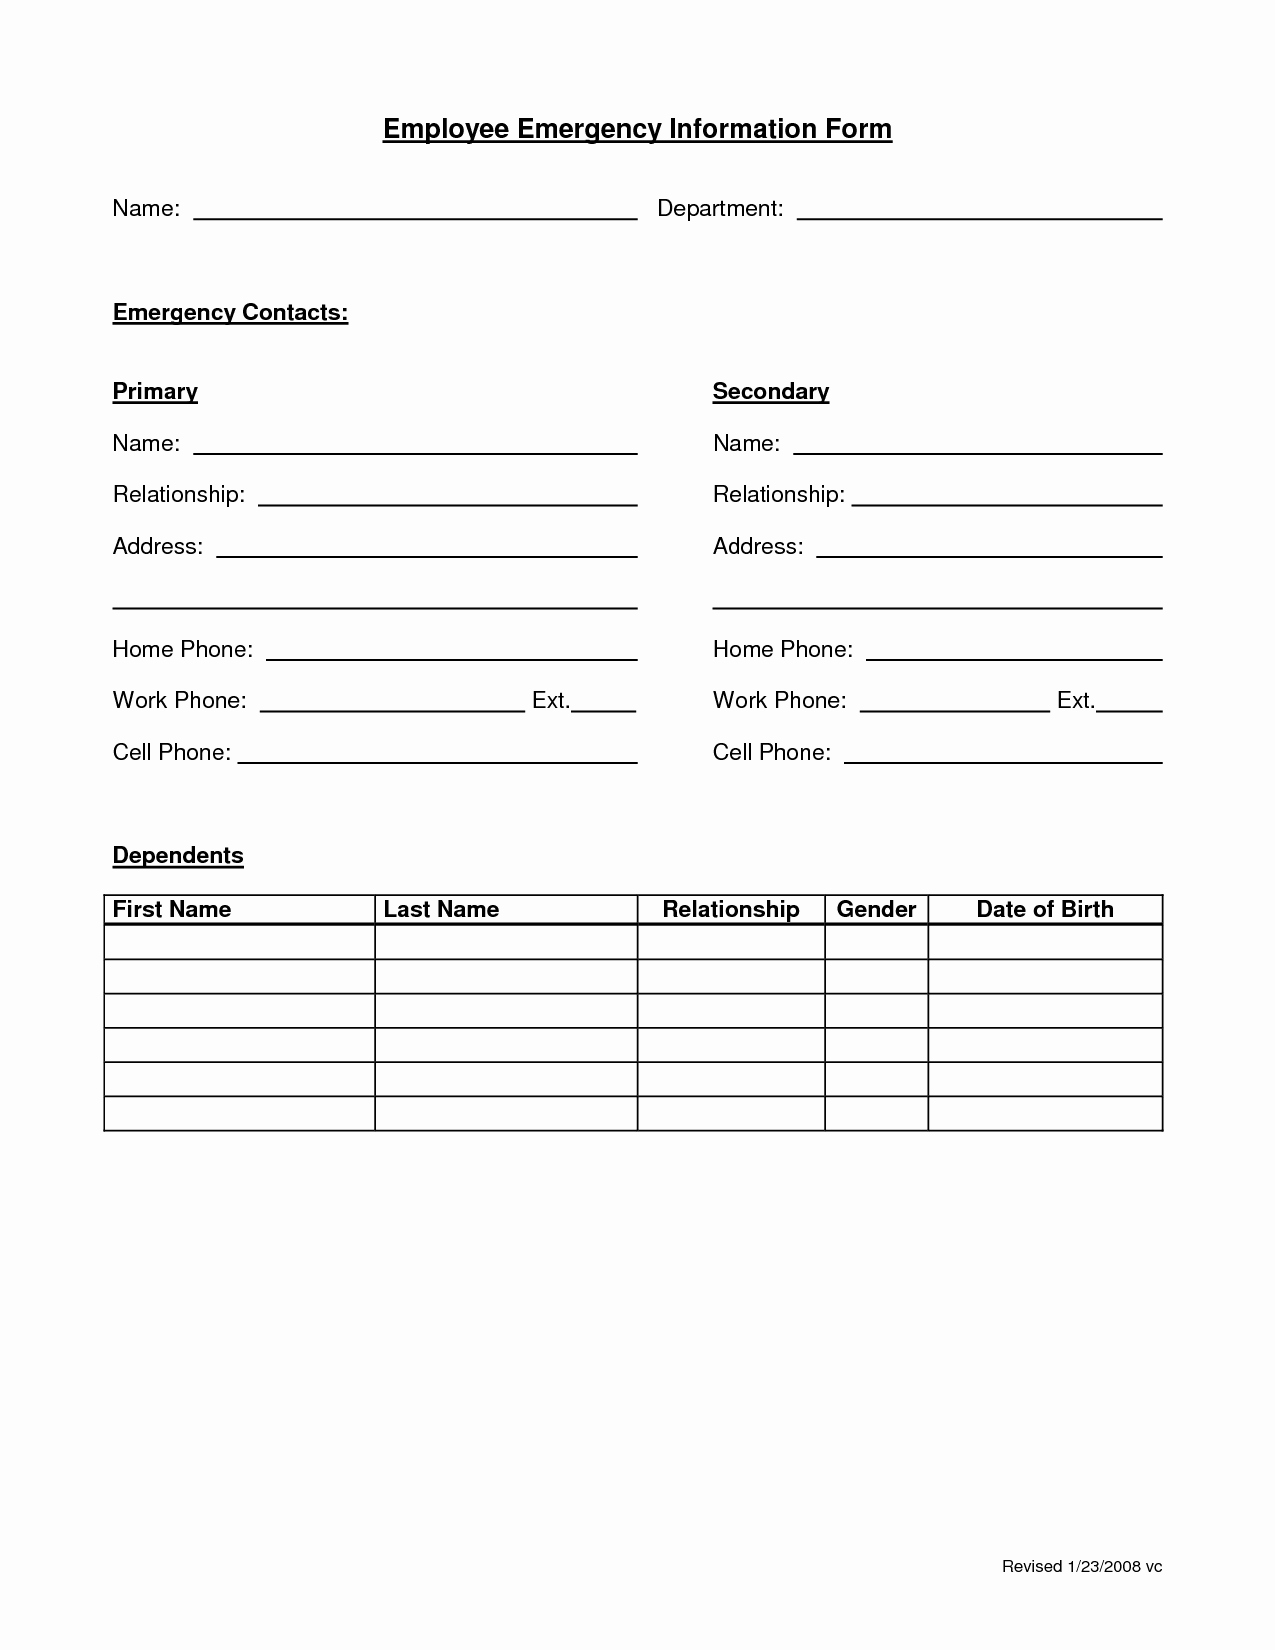 Emergency Contact form Template Free Unique Employee Emergency form Employee forms